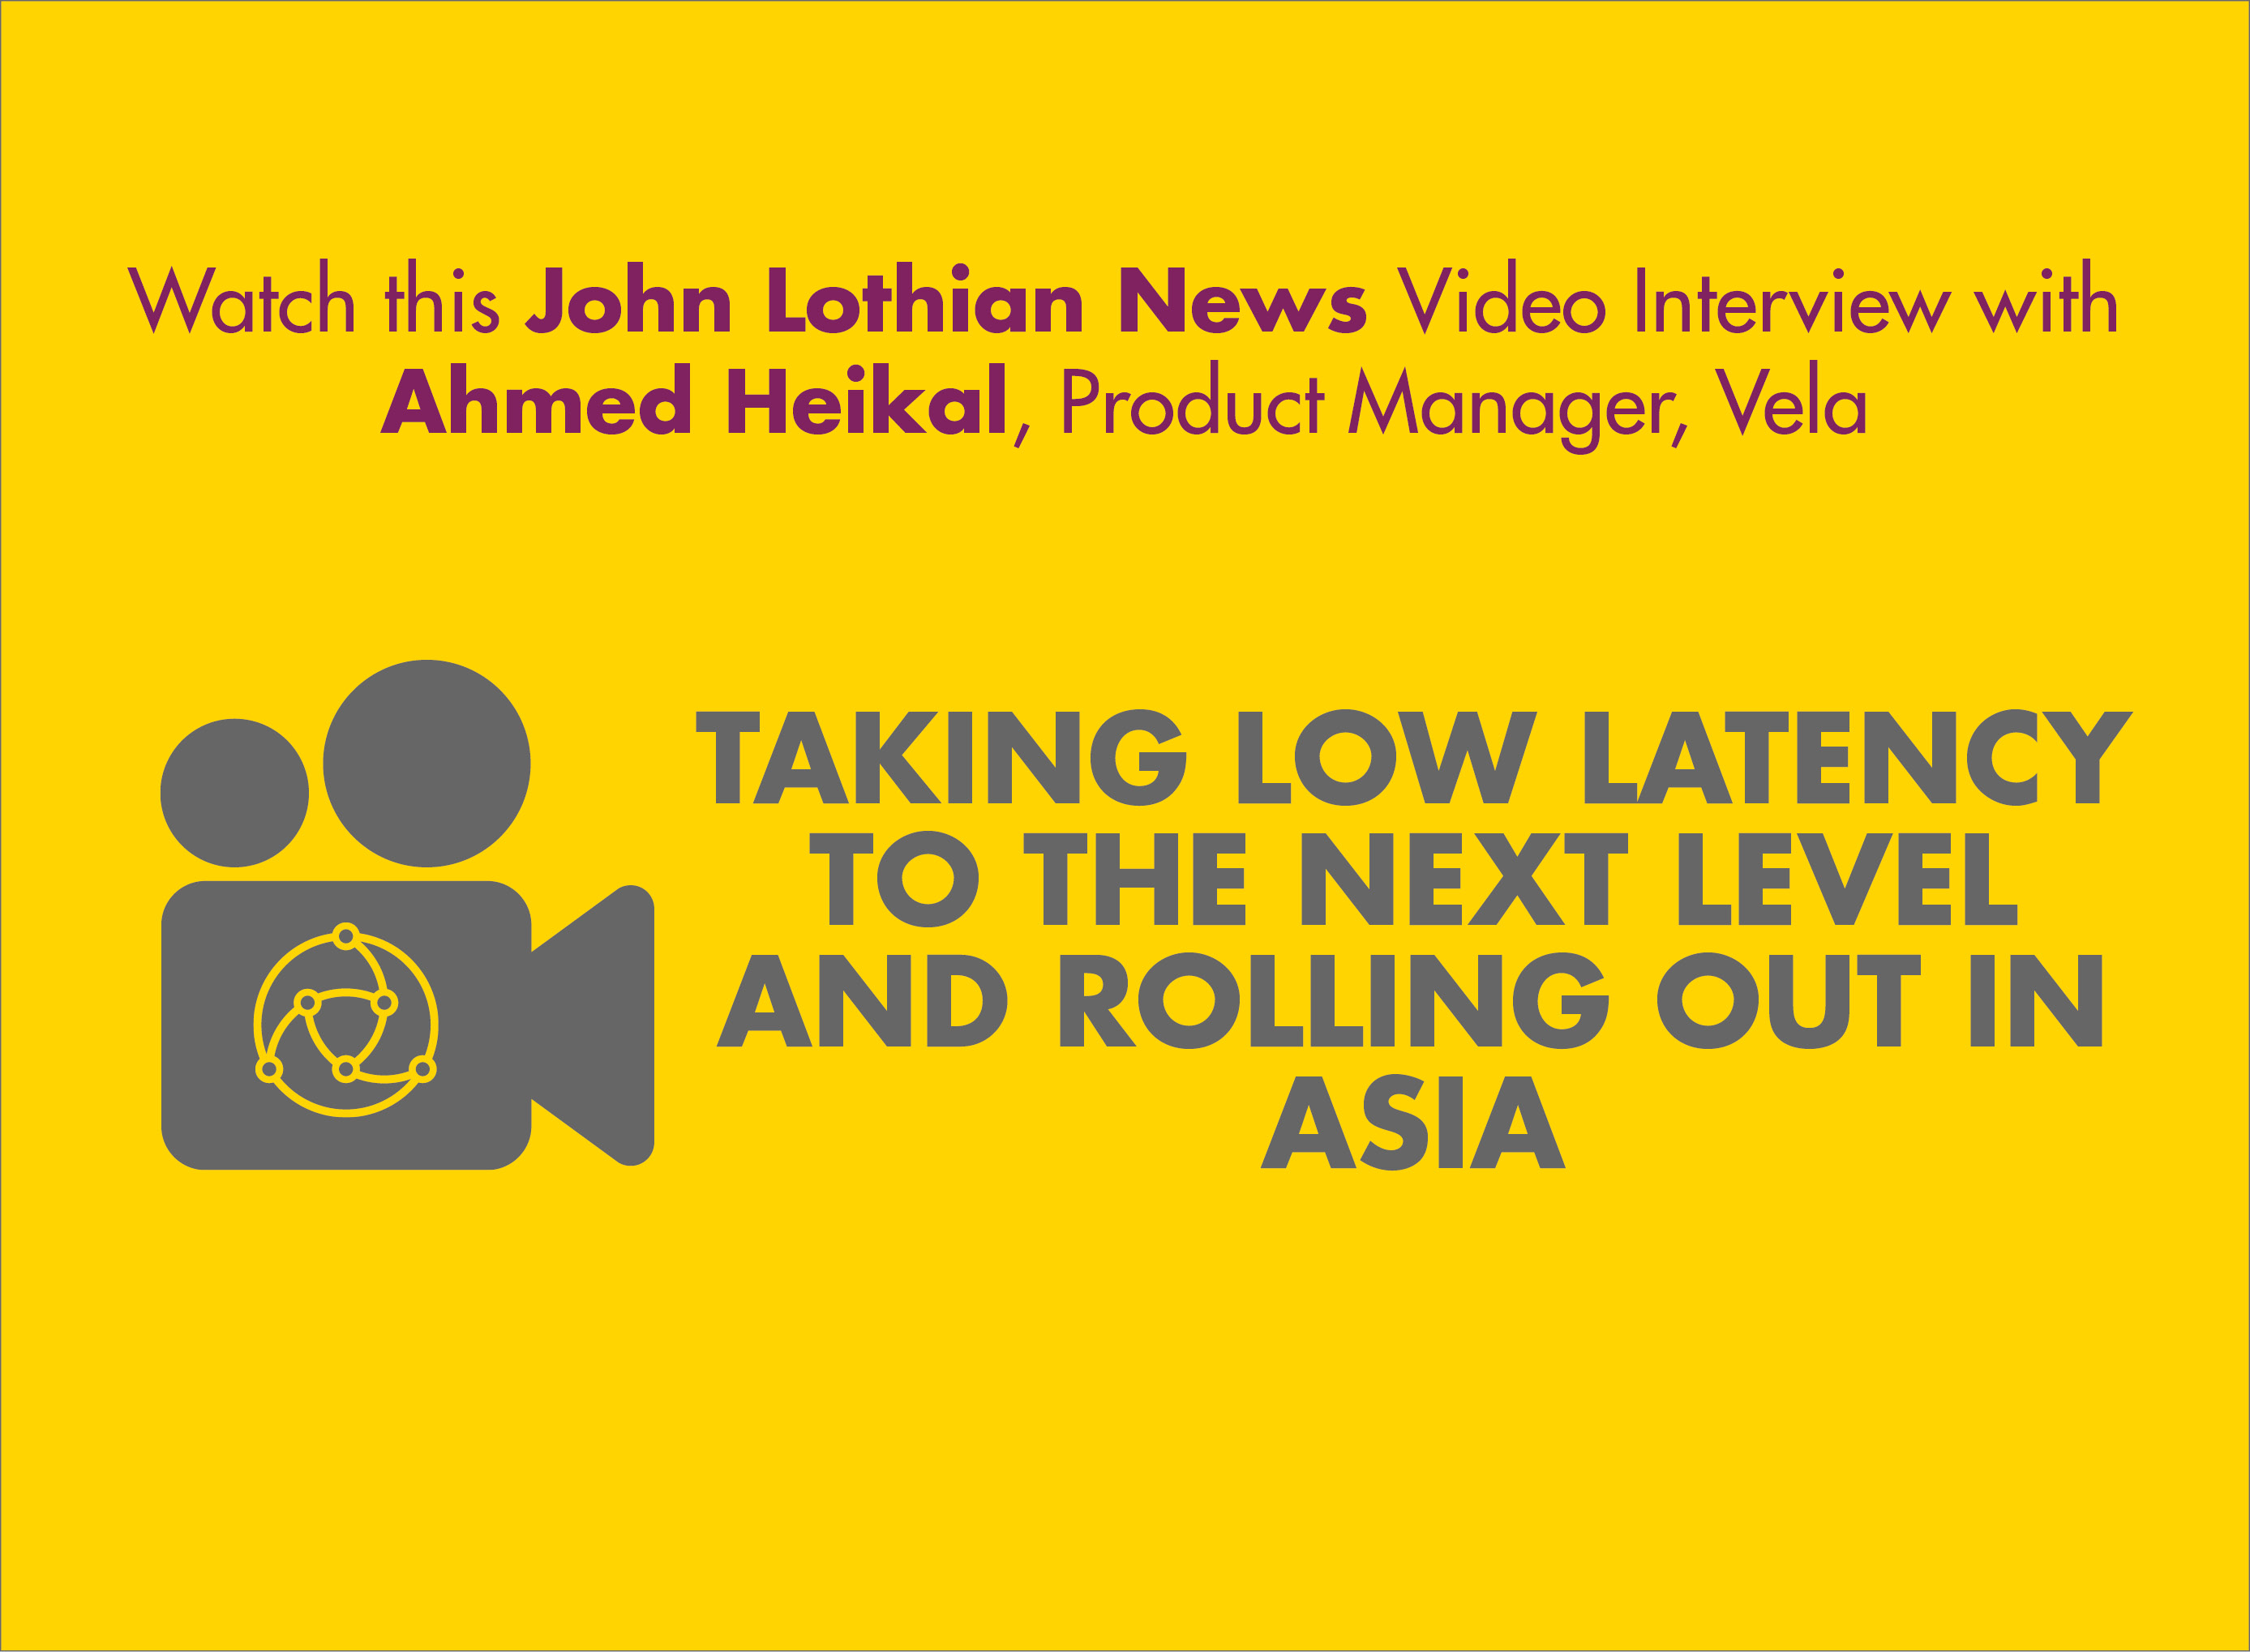 John Lothian News Video Interview with Ahmed Heikal